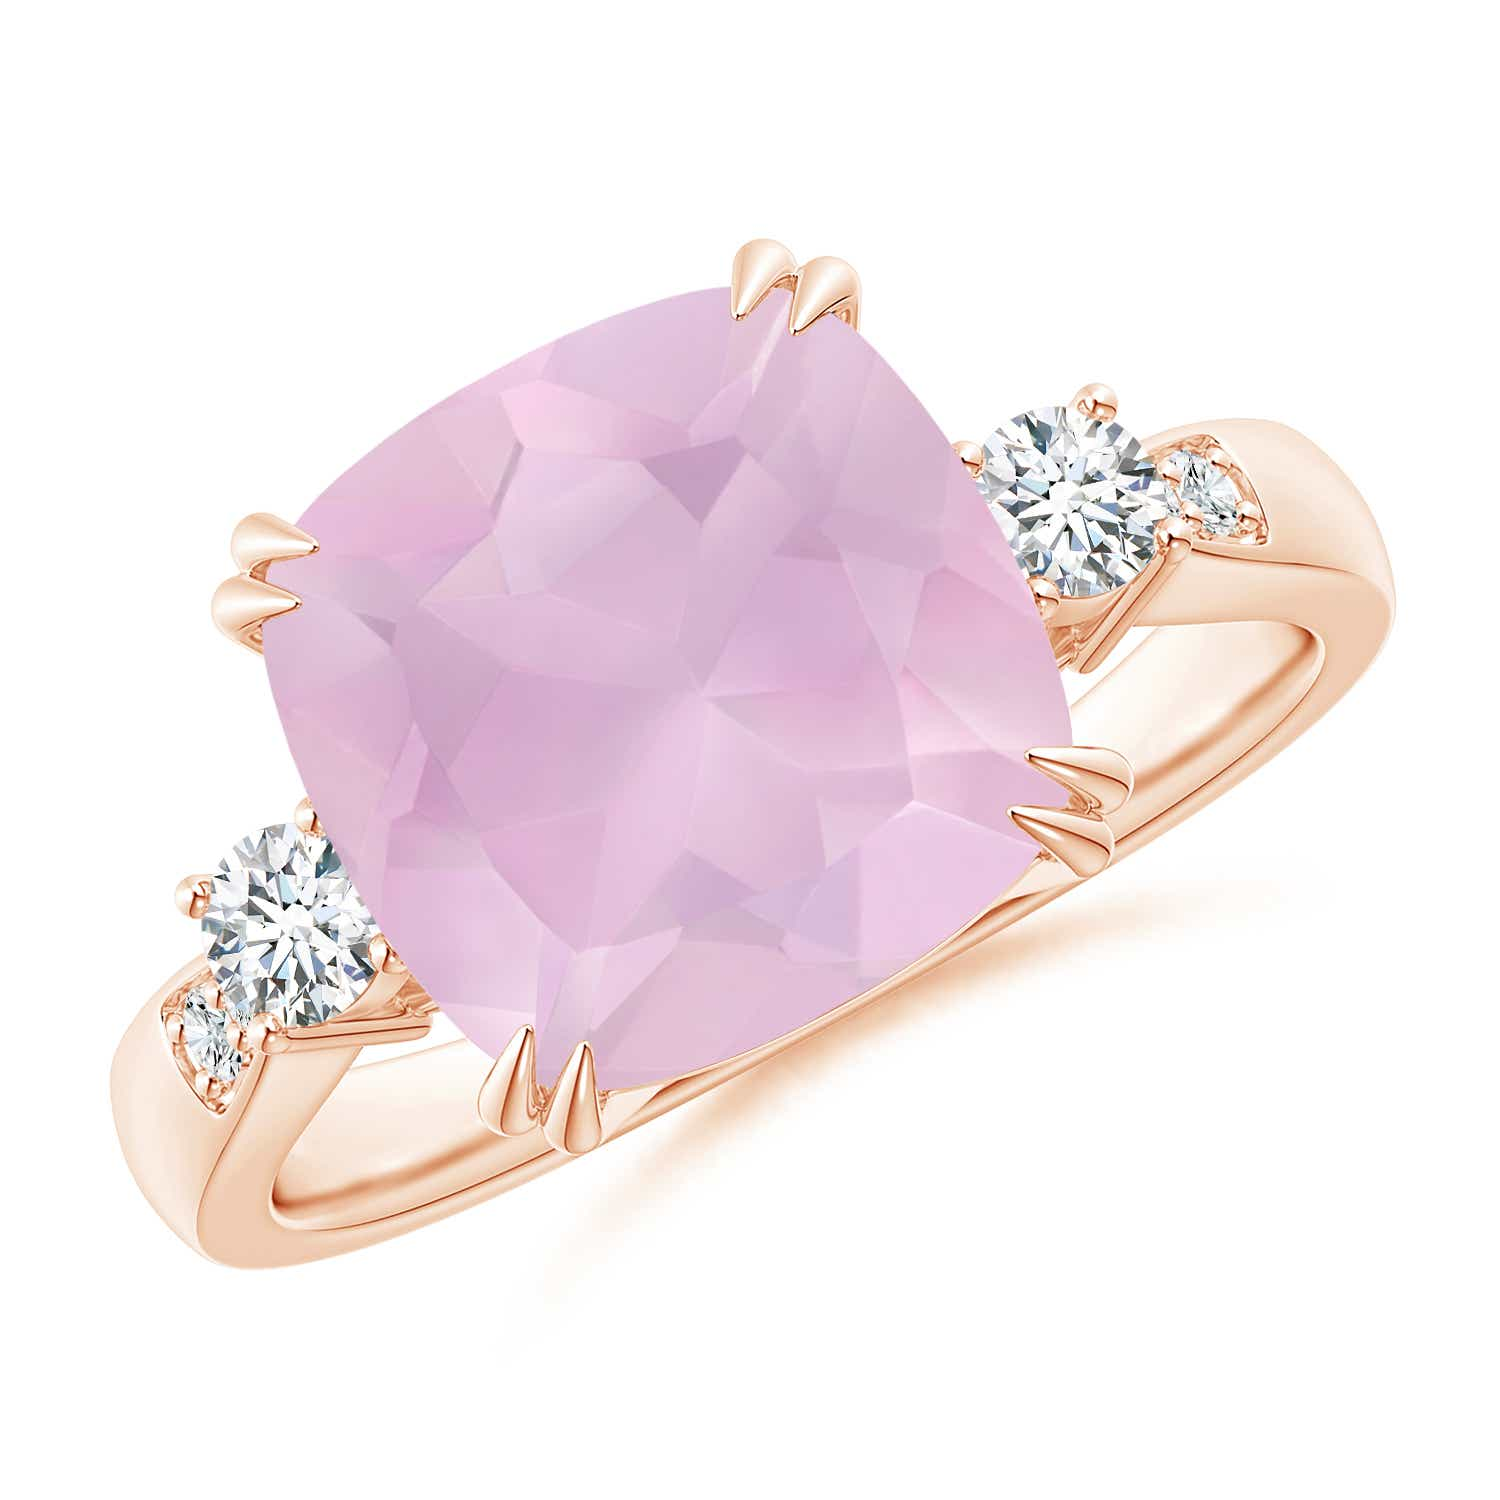 Cushion Rose Quartz Solitaire Ring with Diamond Accents | Angara